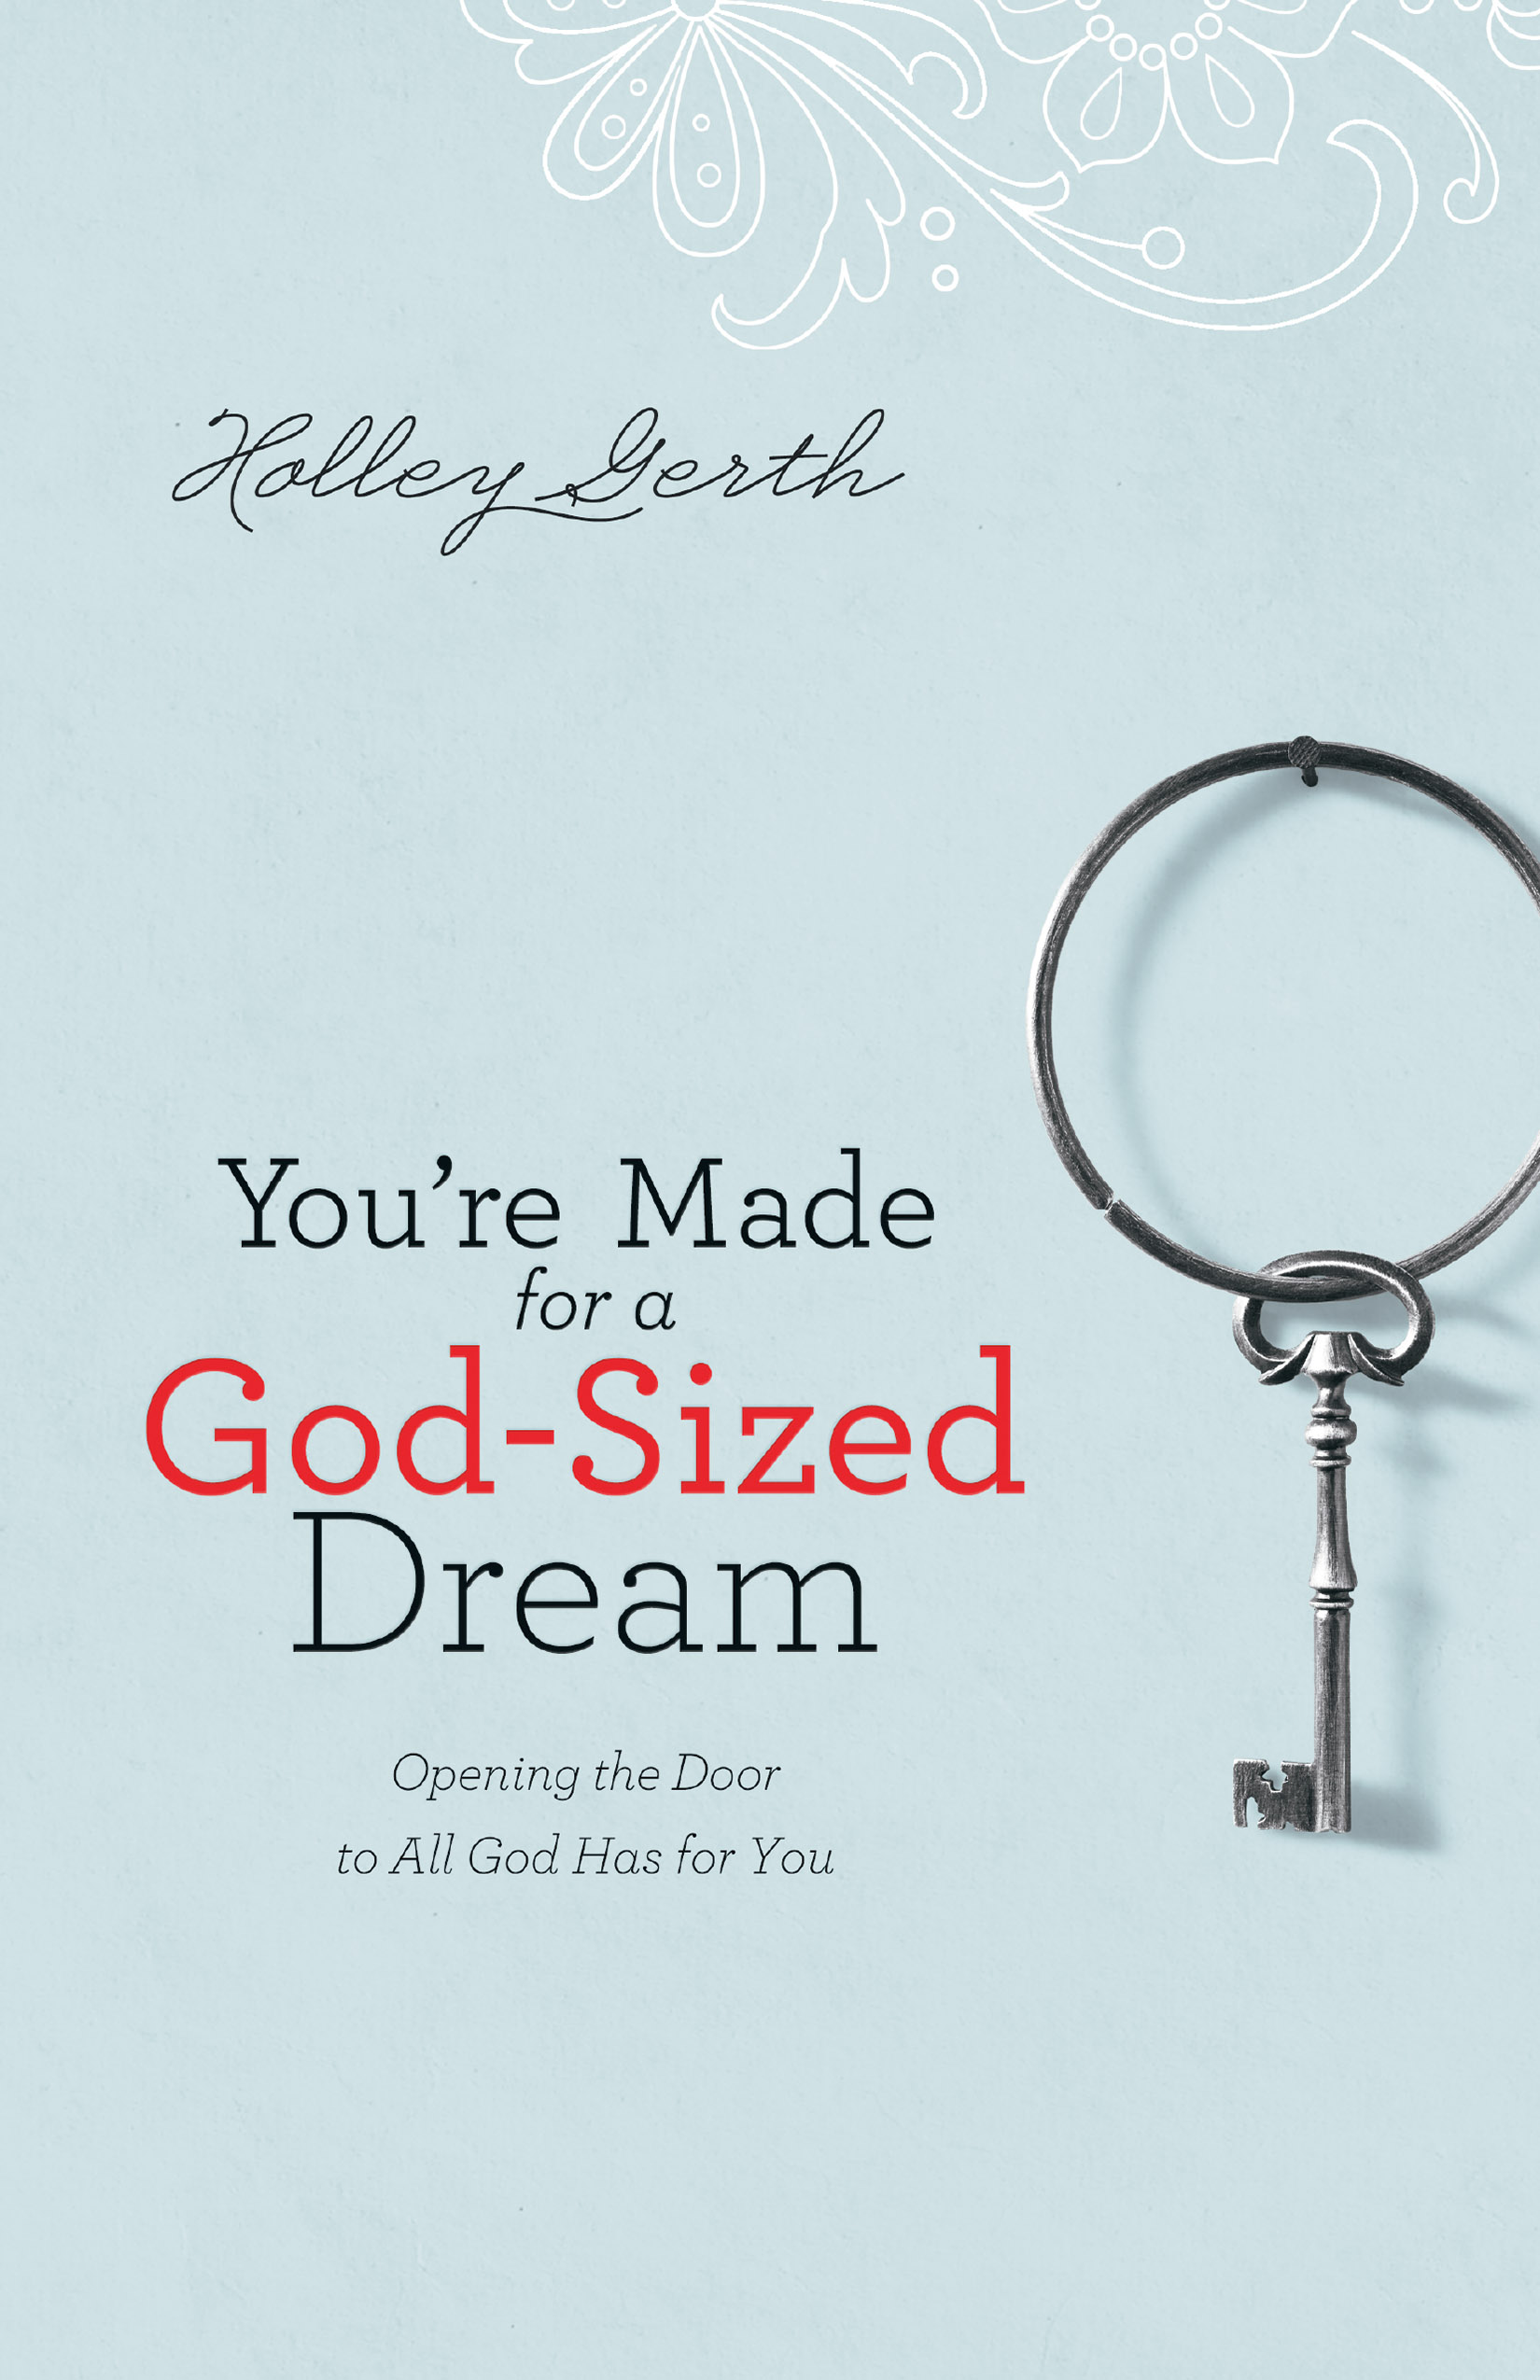 You're Made for a God-sized Dream by Holley Gerth